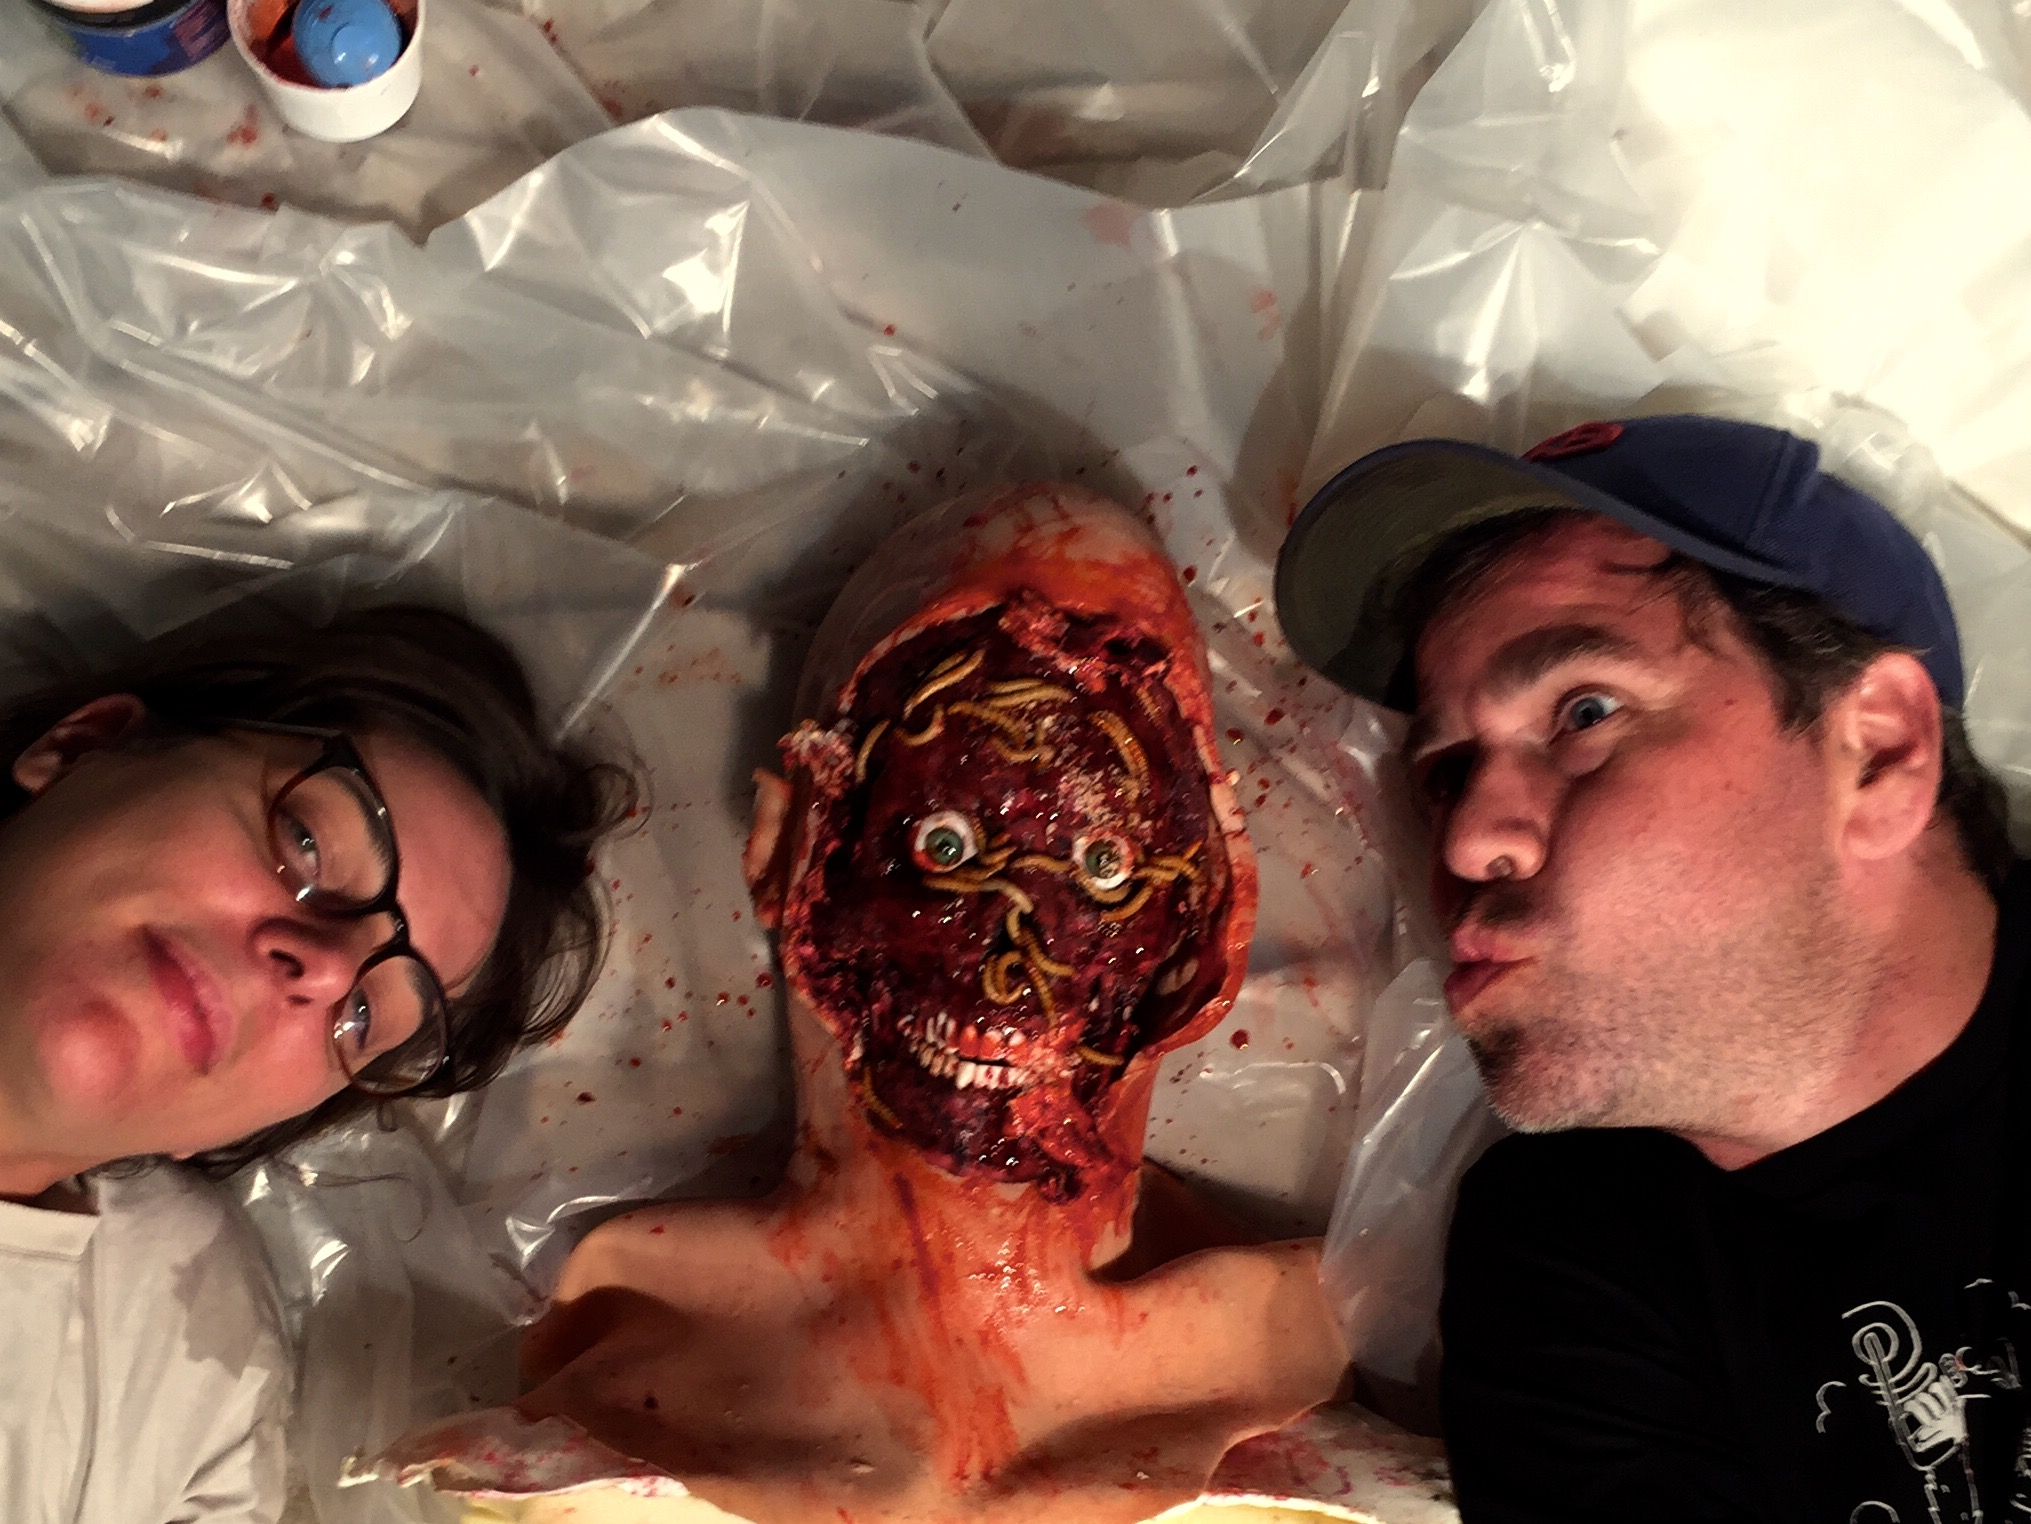 Me and @maggotbreath... oh and gross head with maggots.